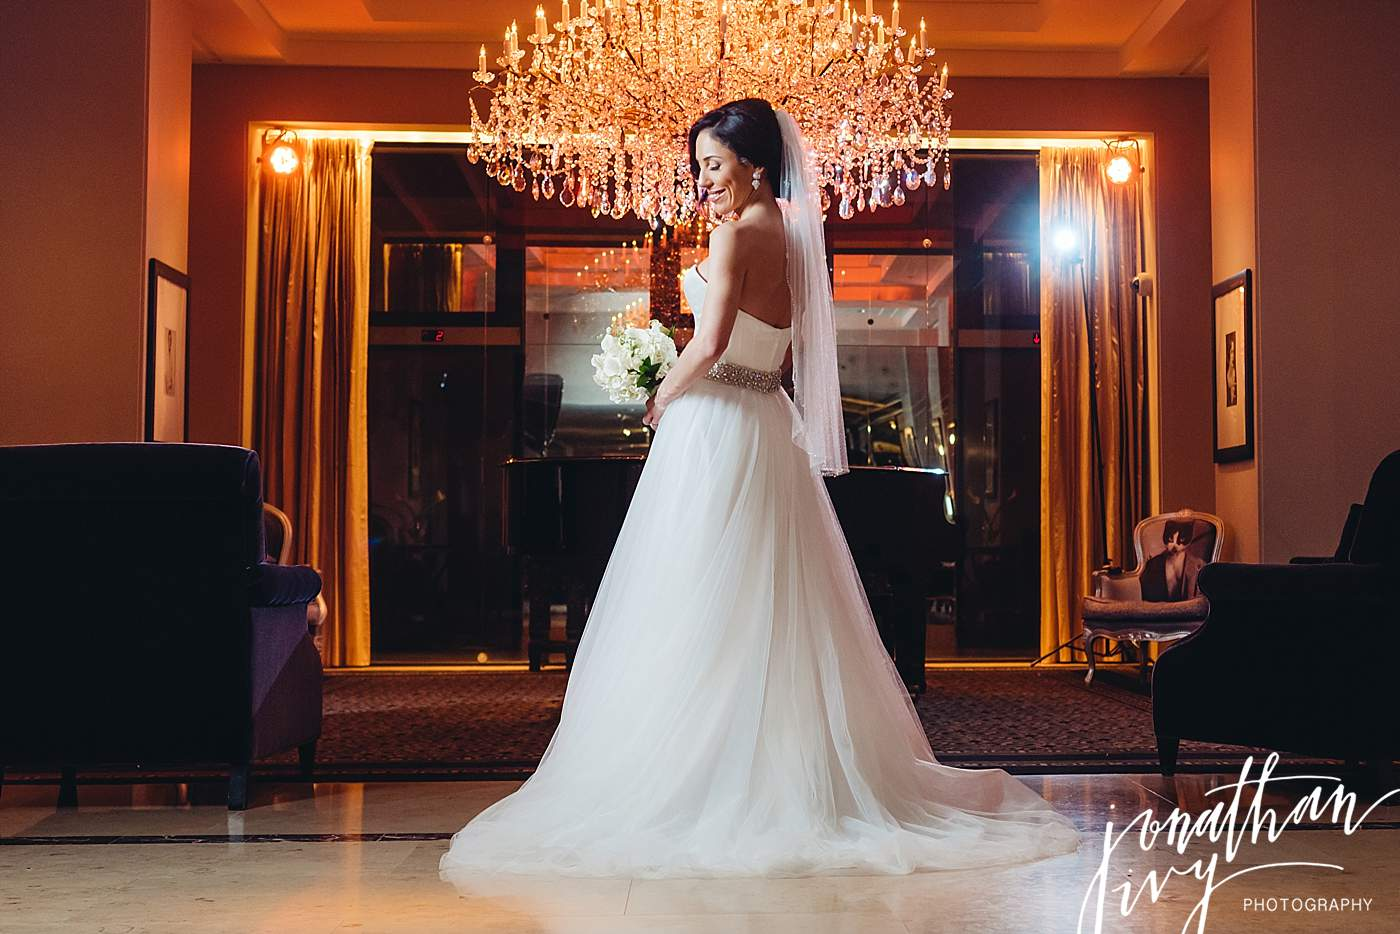 Hotel Zaza Bridal Location